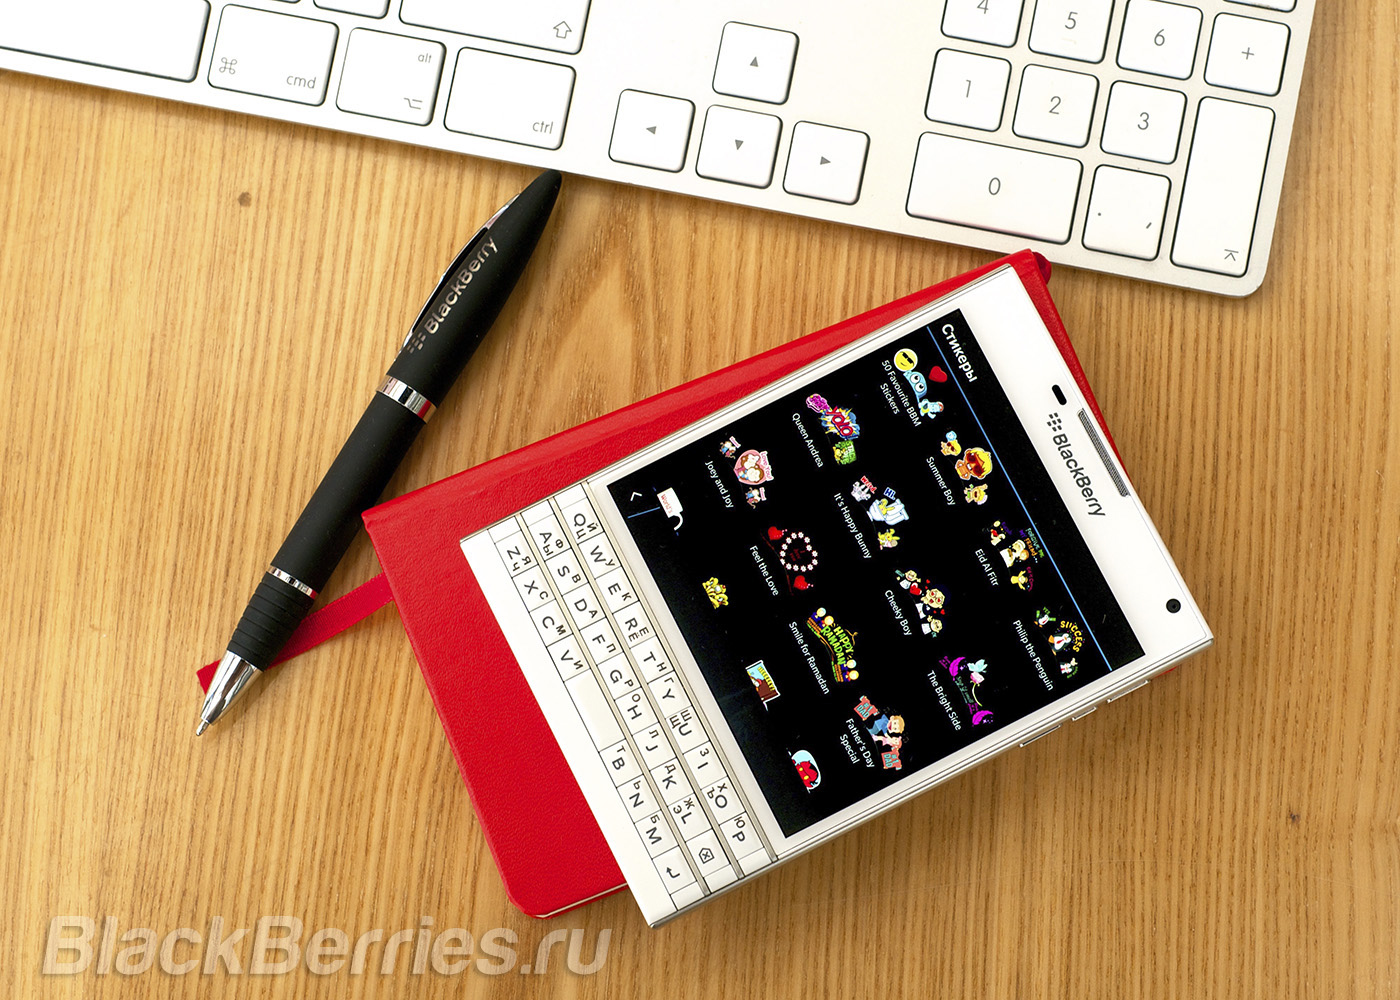 BlackBerry-Passport-App-17-07-05